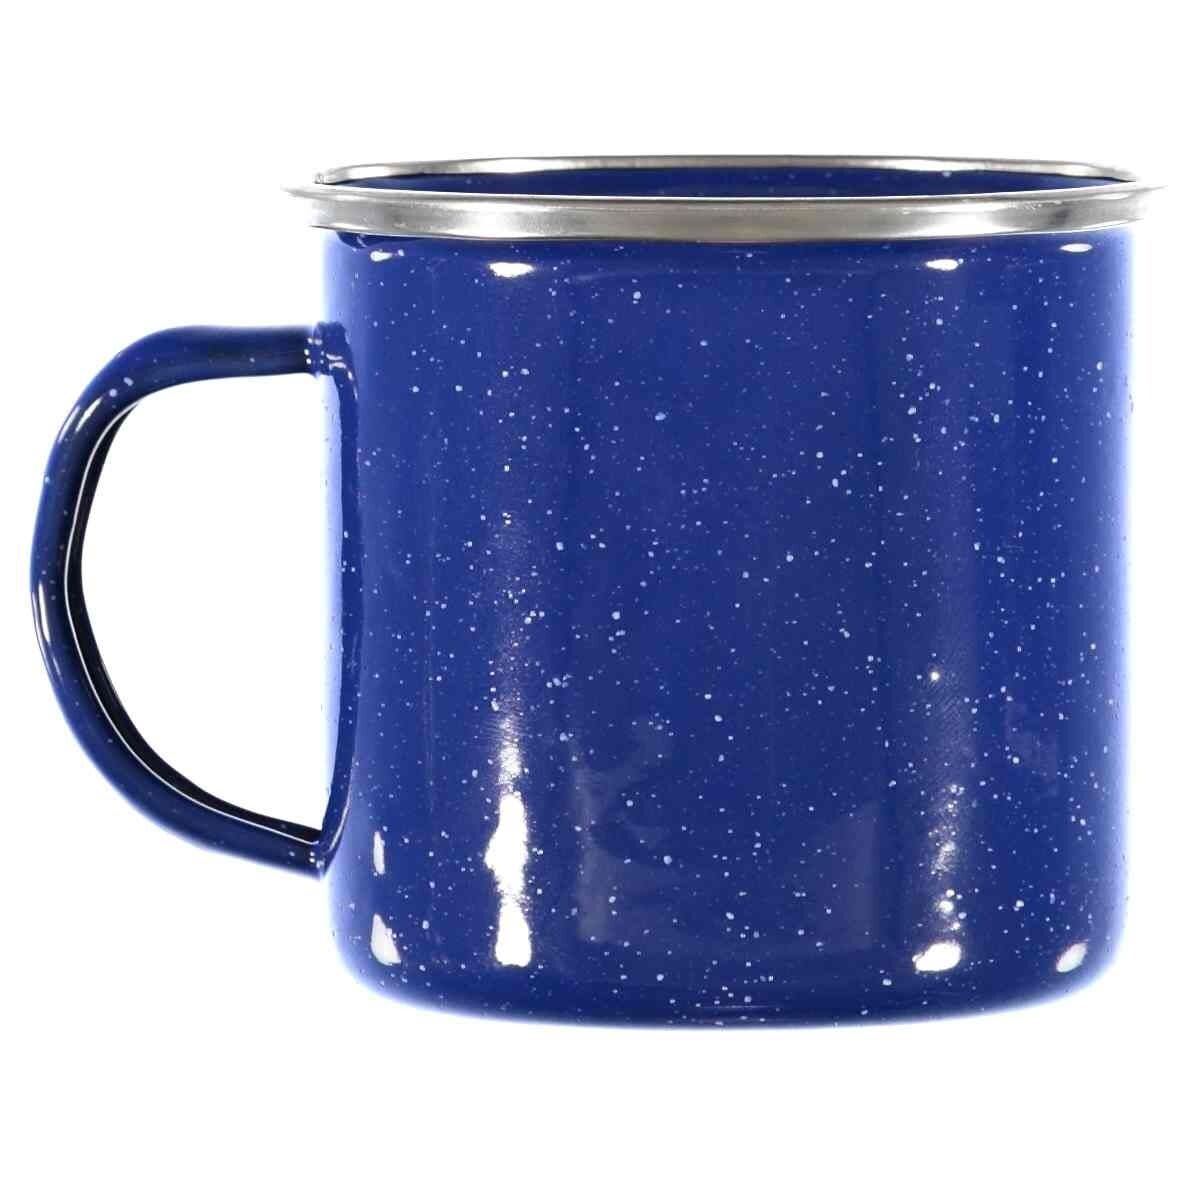 Natural Instincts Blue Enamel Mug